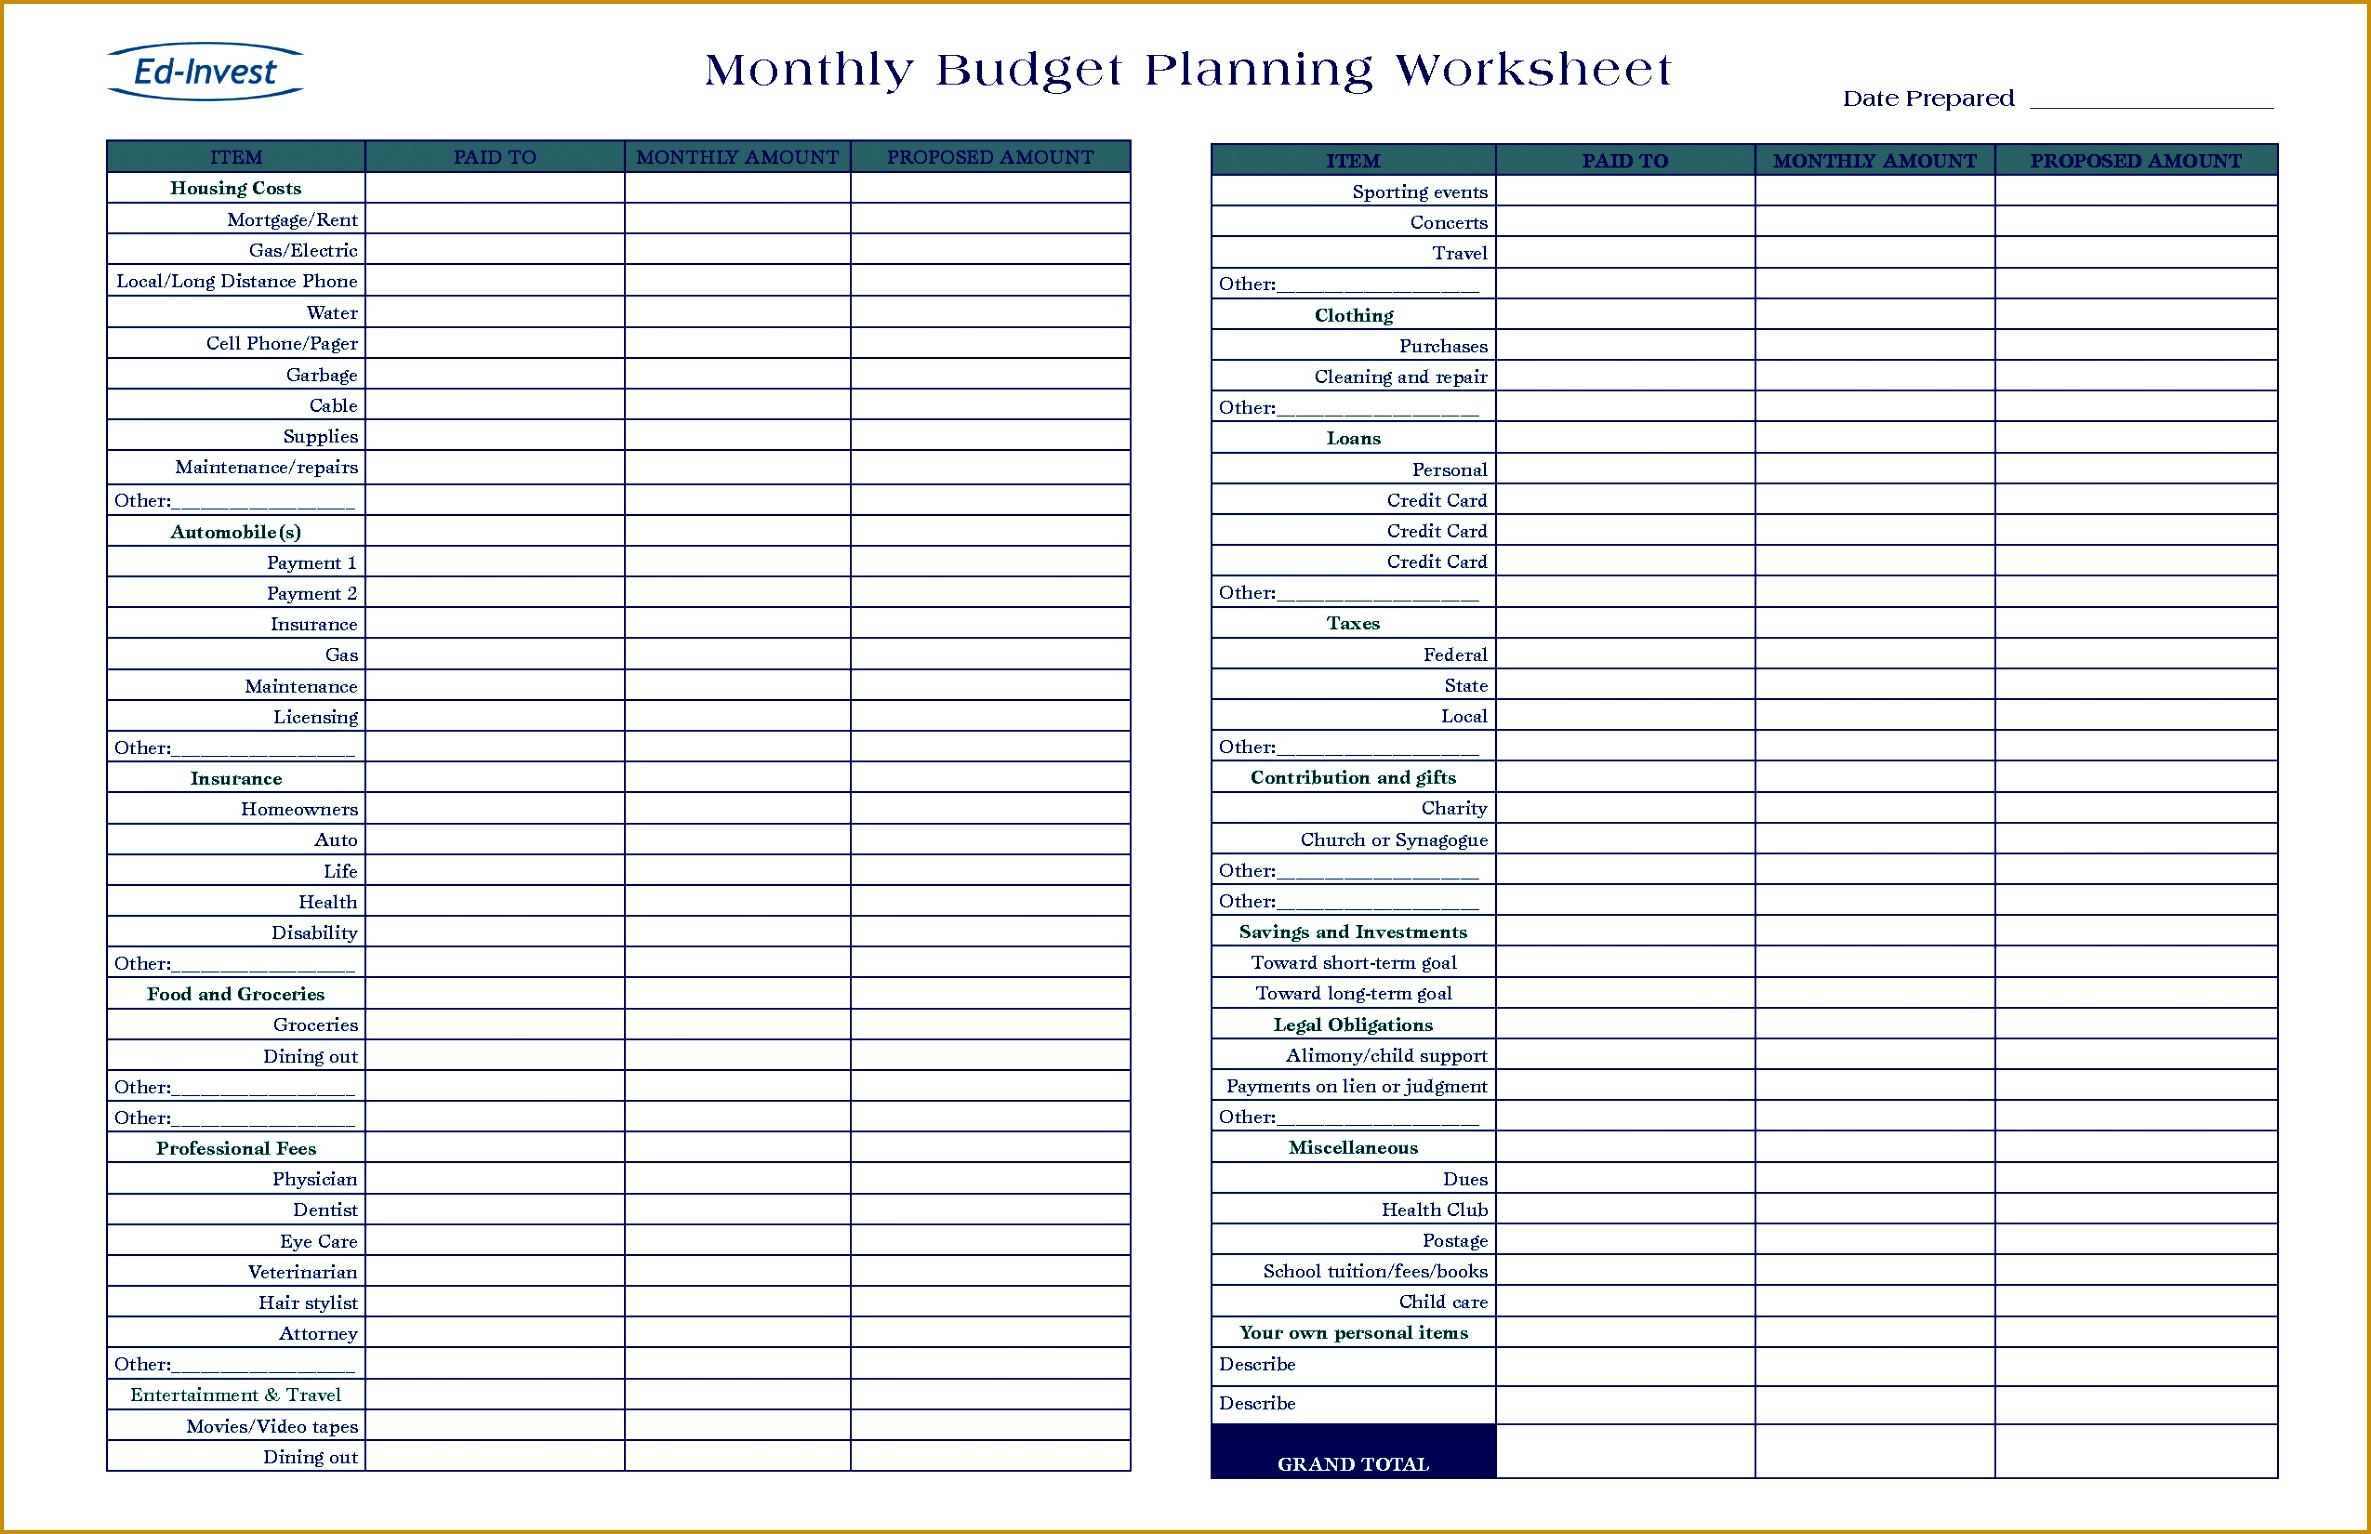 business expense checklist small spreadsheet for in e and expenses laobingkaisuo checklists 15342371